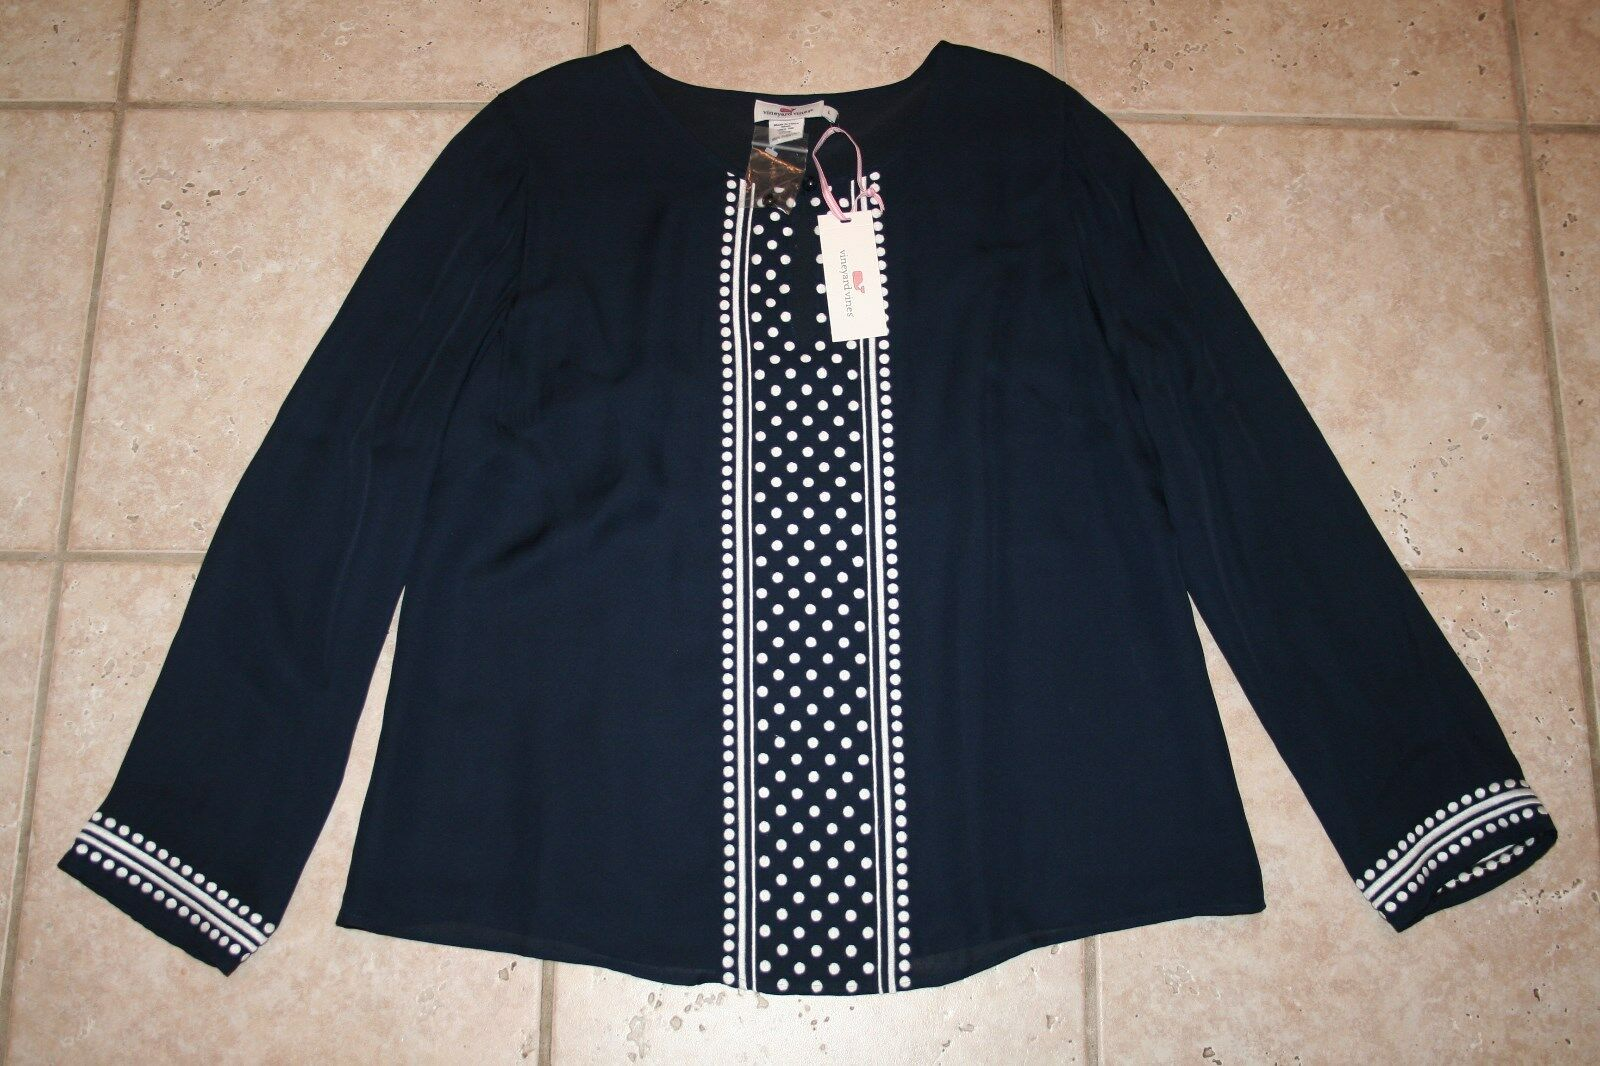 NWT Vineyard Vines damen Small Silk Polka Dot Embroiderot Top